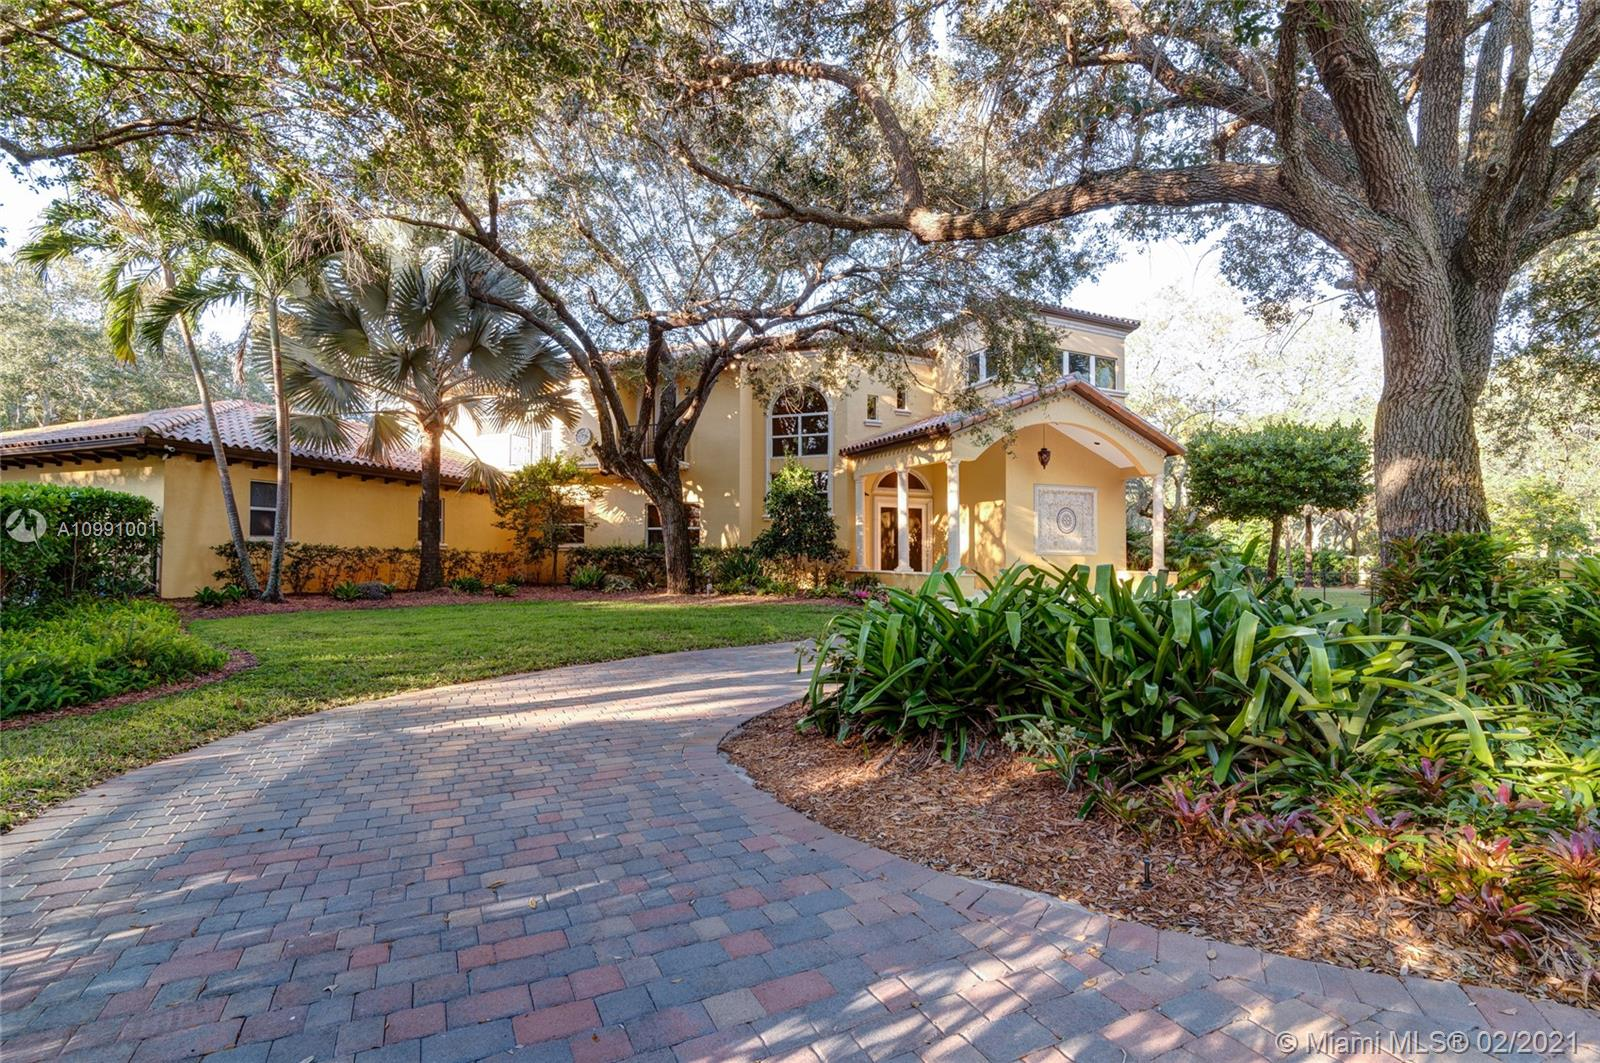 1st time ever on the market custom built N Palmetto Bay home. Meticulously maintained on a lush landscaped corner acre, impact windows and doors, 8 foot doors and 10 foot ceilings with custom crown molding and baseboards, large master suite with tray ceilings, multiple home office options, custom cabinetry with granite tops thru out, heated pool with jacuzzi spa, gated entries and fenced in yard, central vacuum system, 1st and 2nd floor laundry rooms, golf putting and chipping green, brick paver driveway, security camera system, large patio with covered entertaining area.  North Palmetto Bay neighborhood and close to outstanding schools!